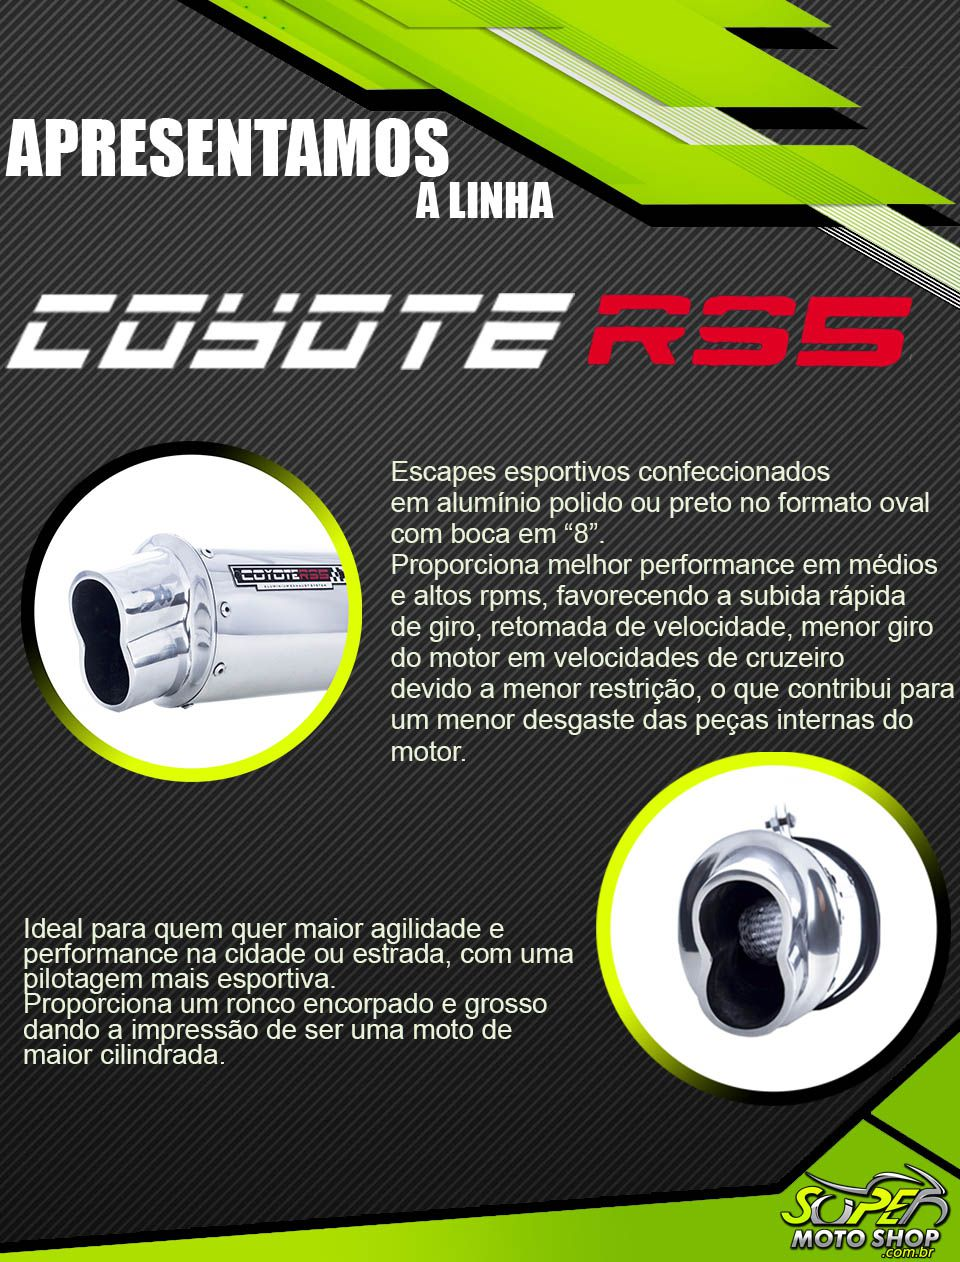 Escape / Ponteira Coyote RS5 Boca 8 Aluminio Oval 2X1 - GS 500 - Suzuki